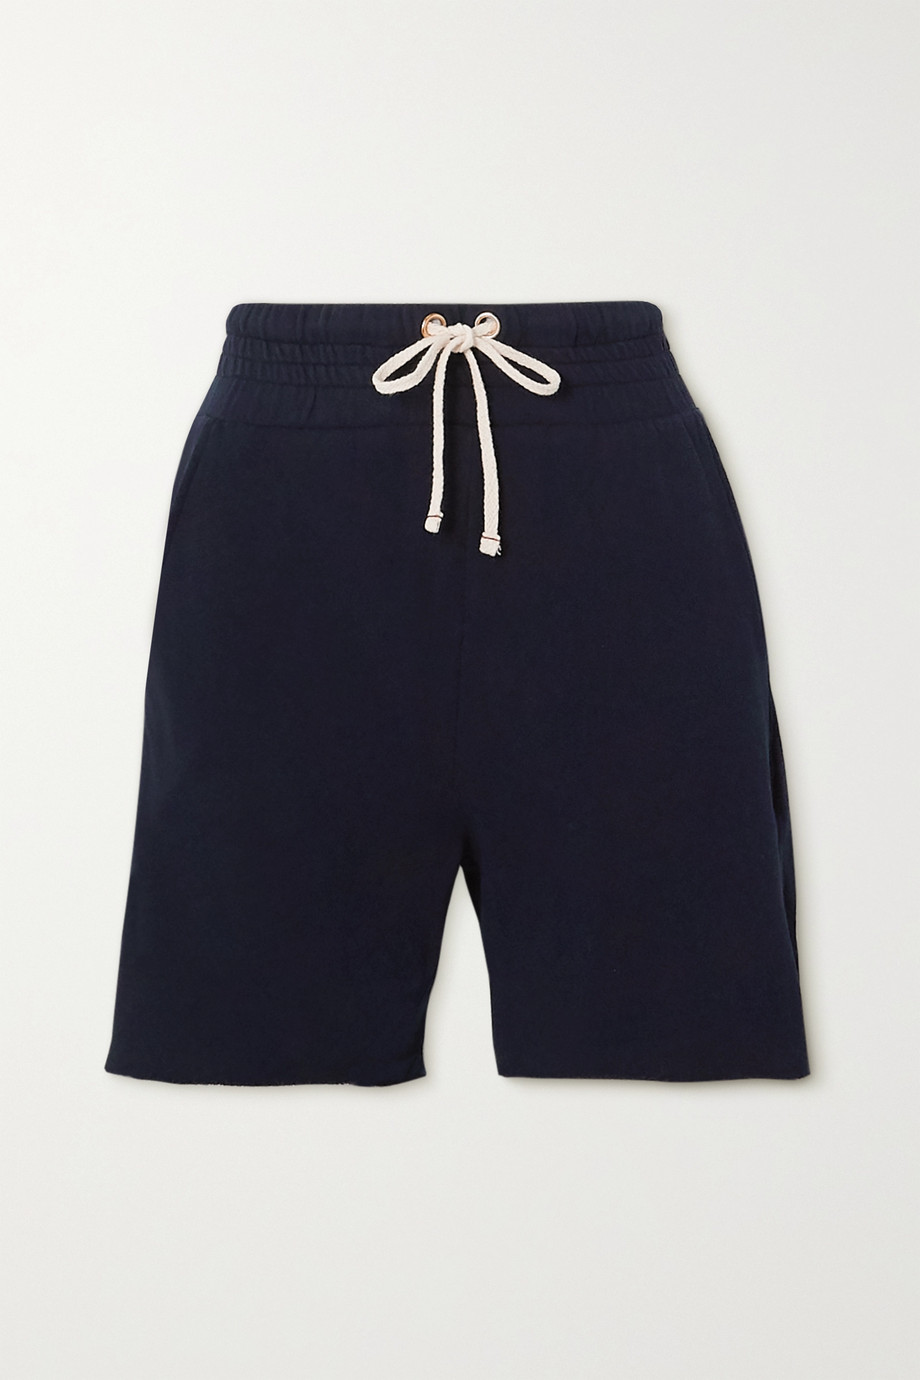 Les Tien Yacht frayed cotton-jersey shorts